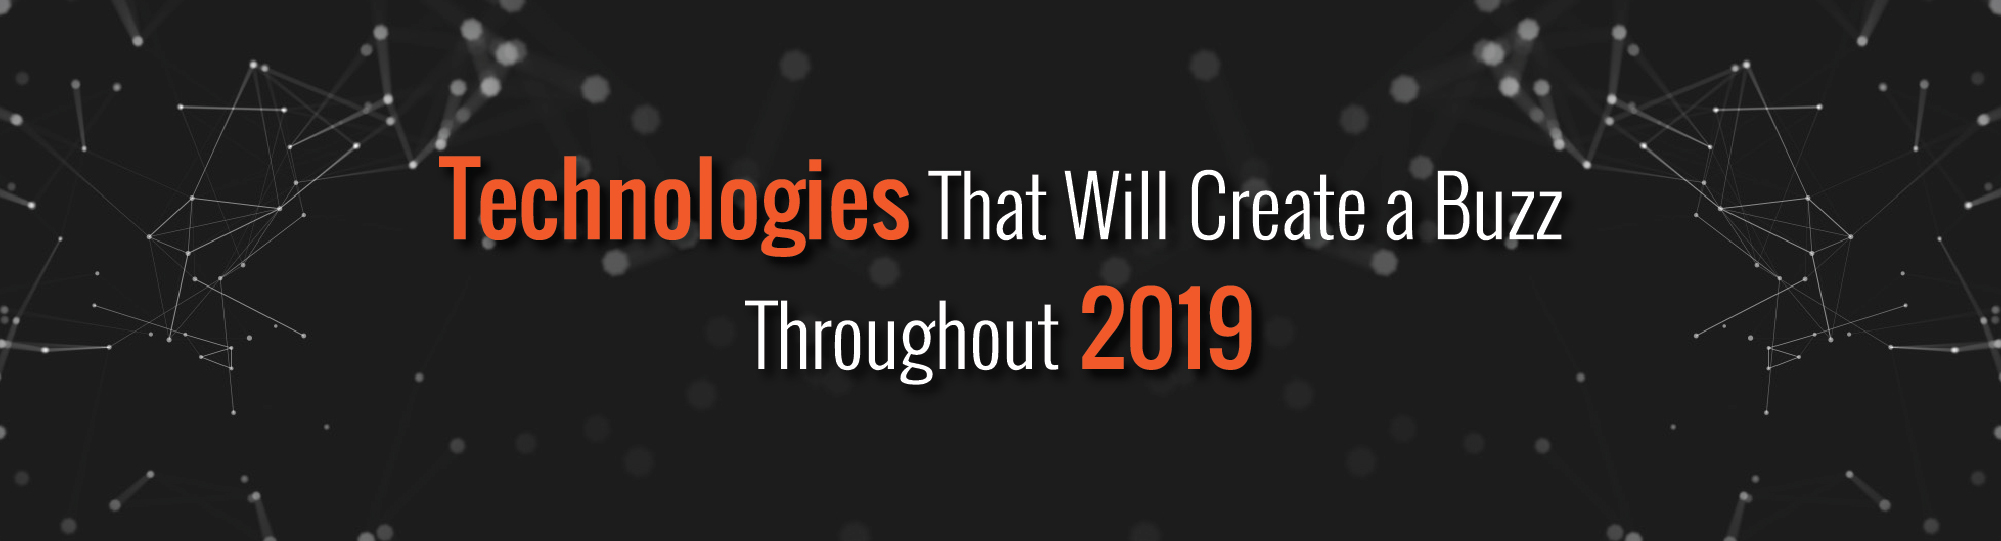 Technologies That Will Create a Buzz Throughout 2019-05